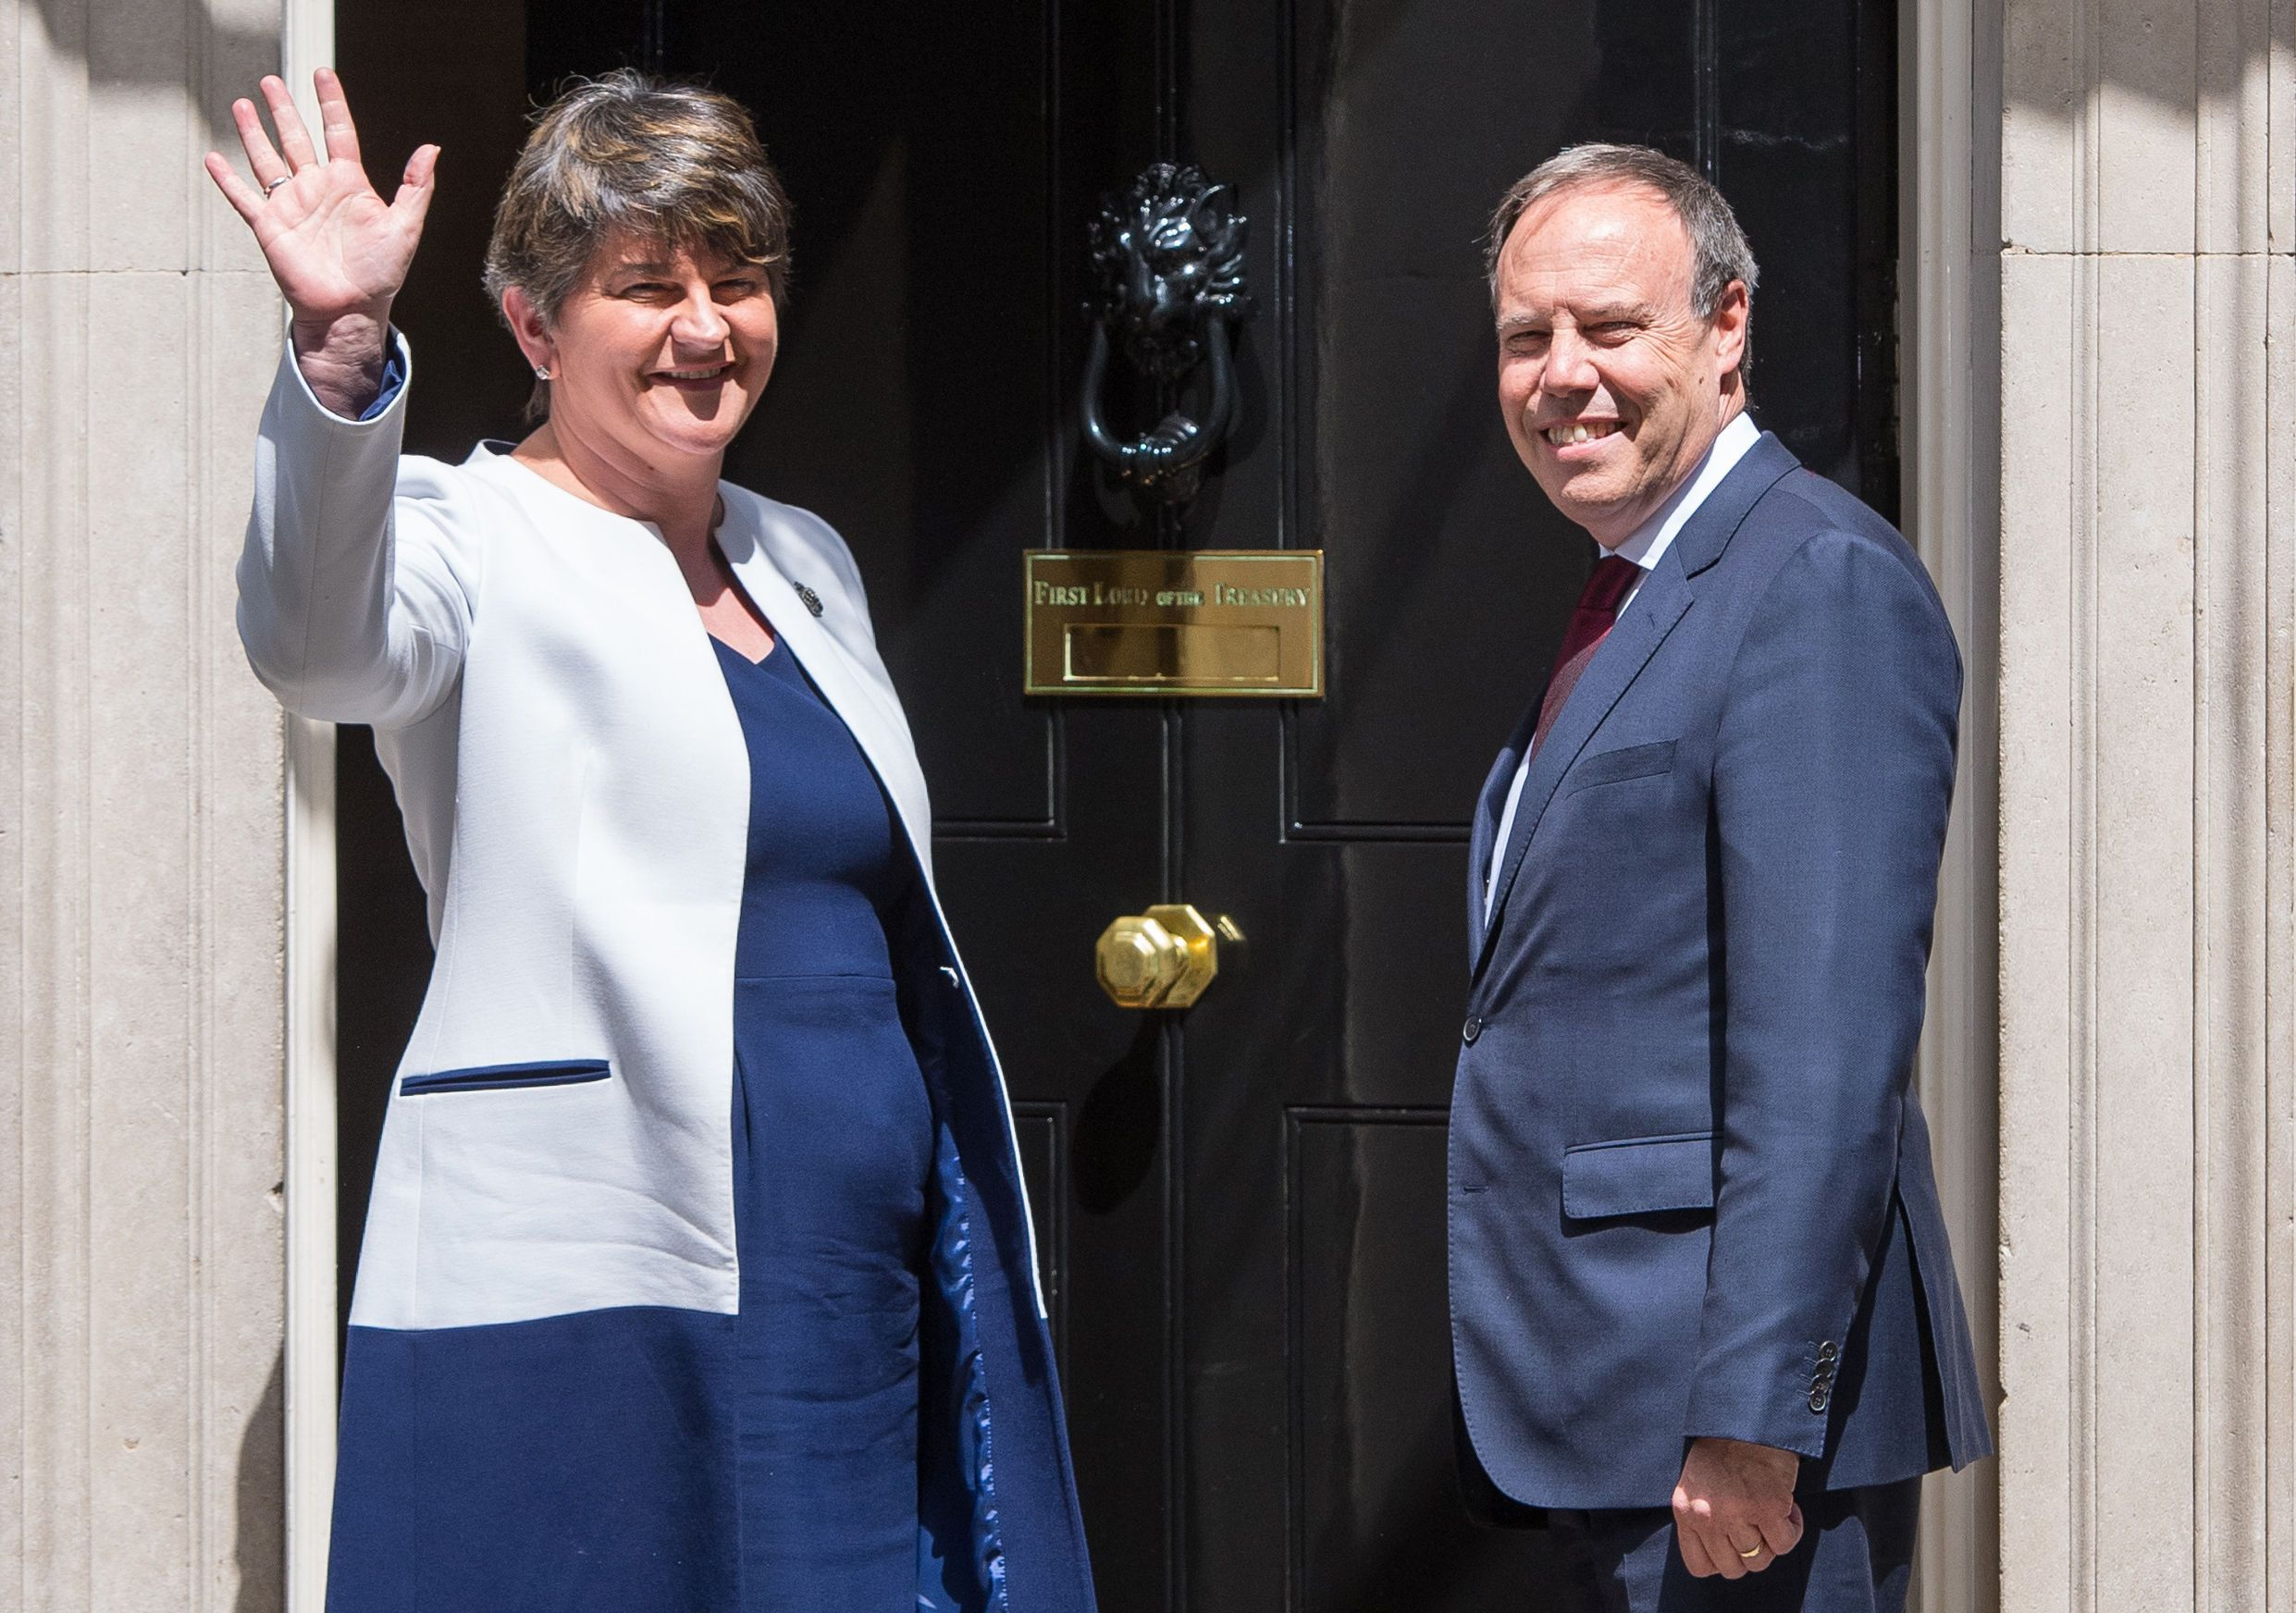 DUP 'Belatedly Playing Hardball' With Tories As Deal Falters Ahead Of Queen's